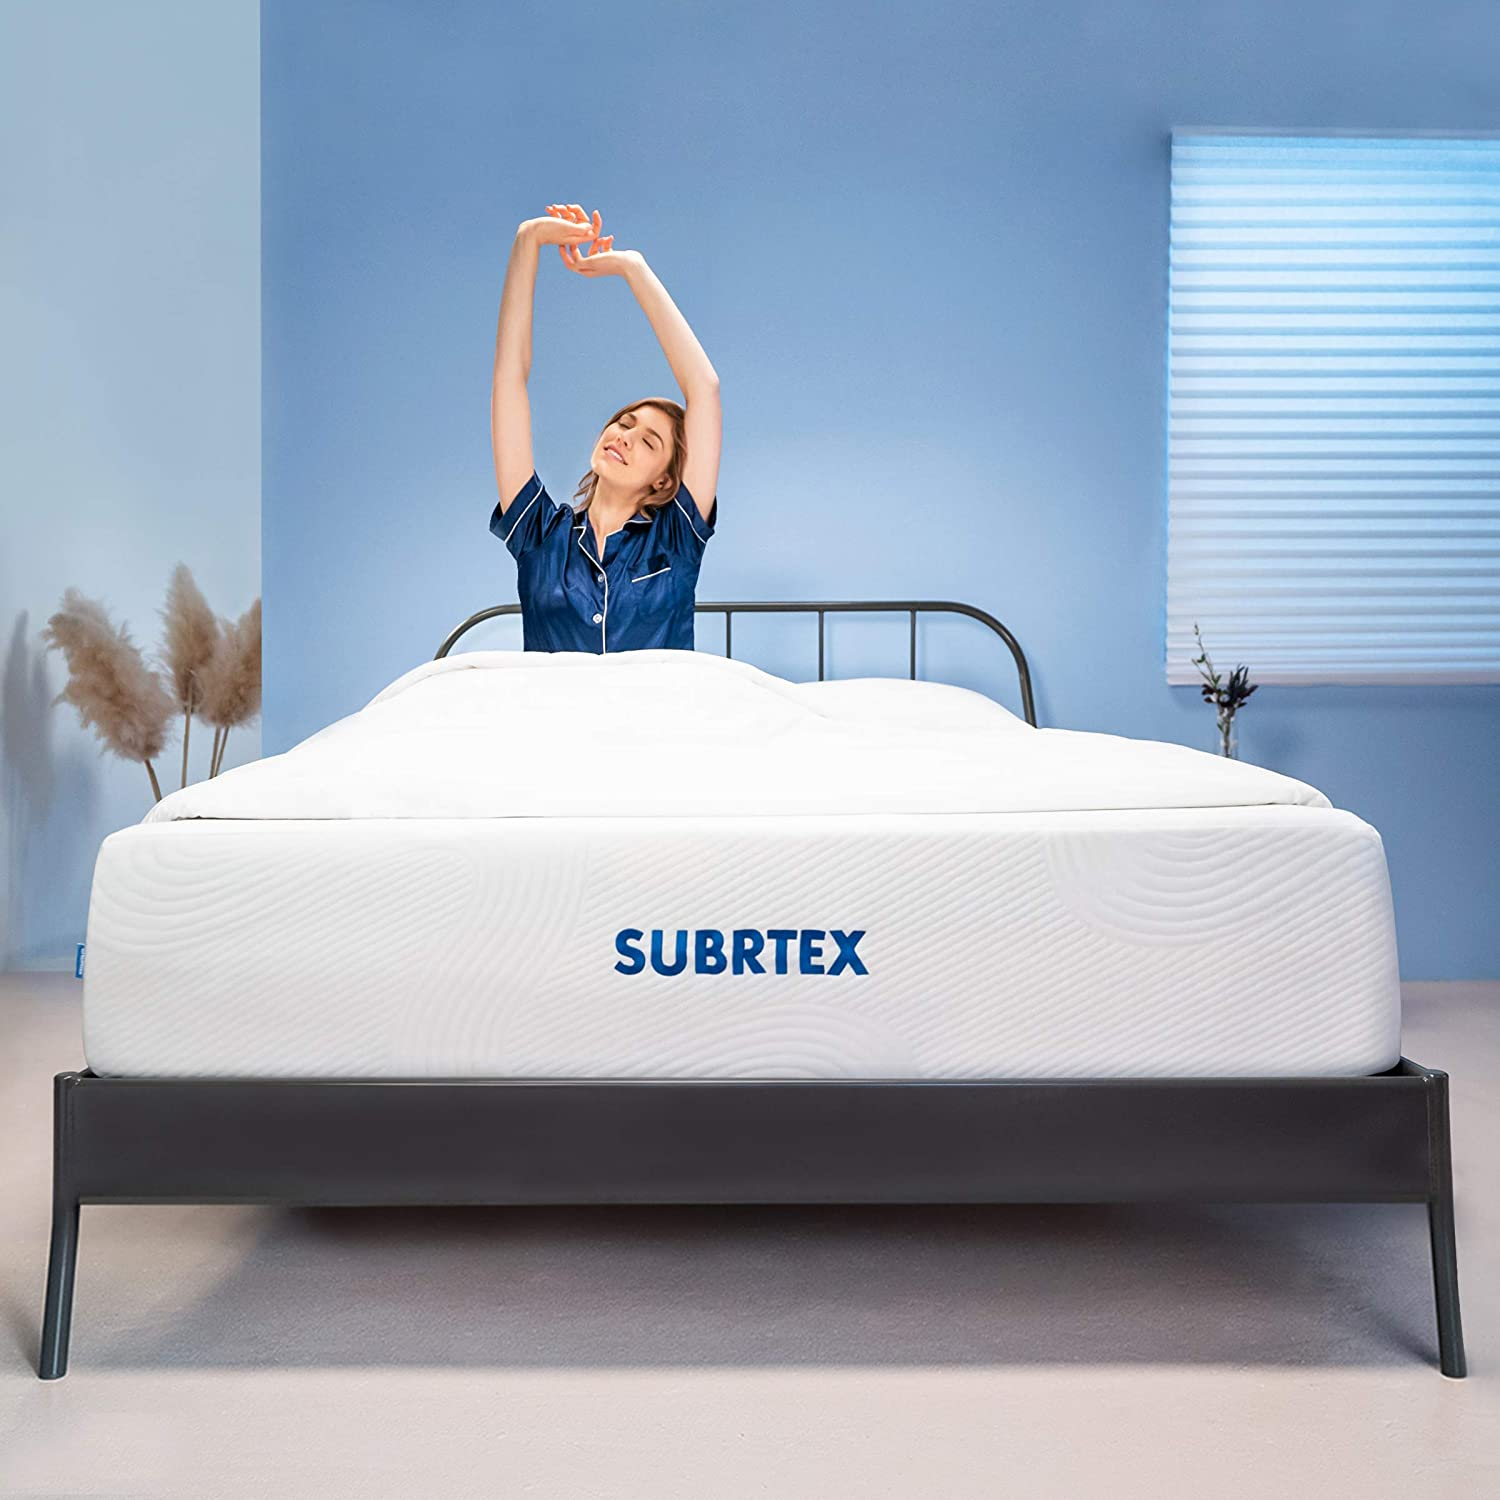 Subrtex 12-inch Breathable 3 Layers Gel-infused Memory Foam Mattress Soft Full Body Support Comfortable Cooling Bed in a Box – 10 Years Warranty Twin